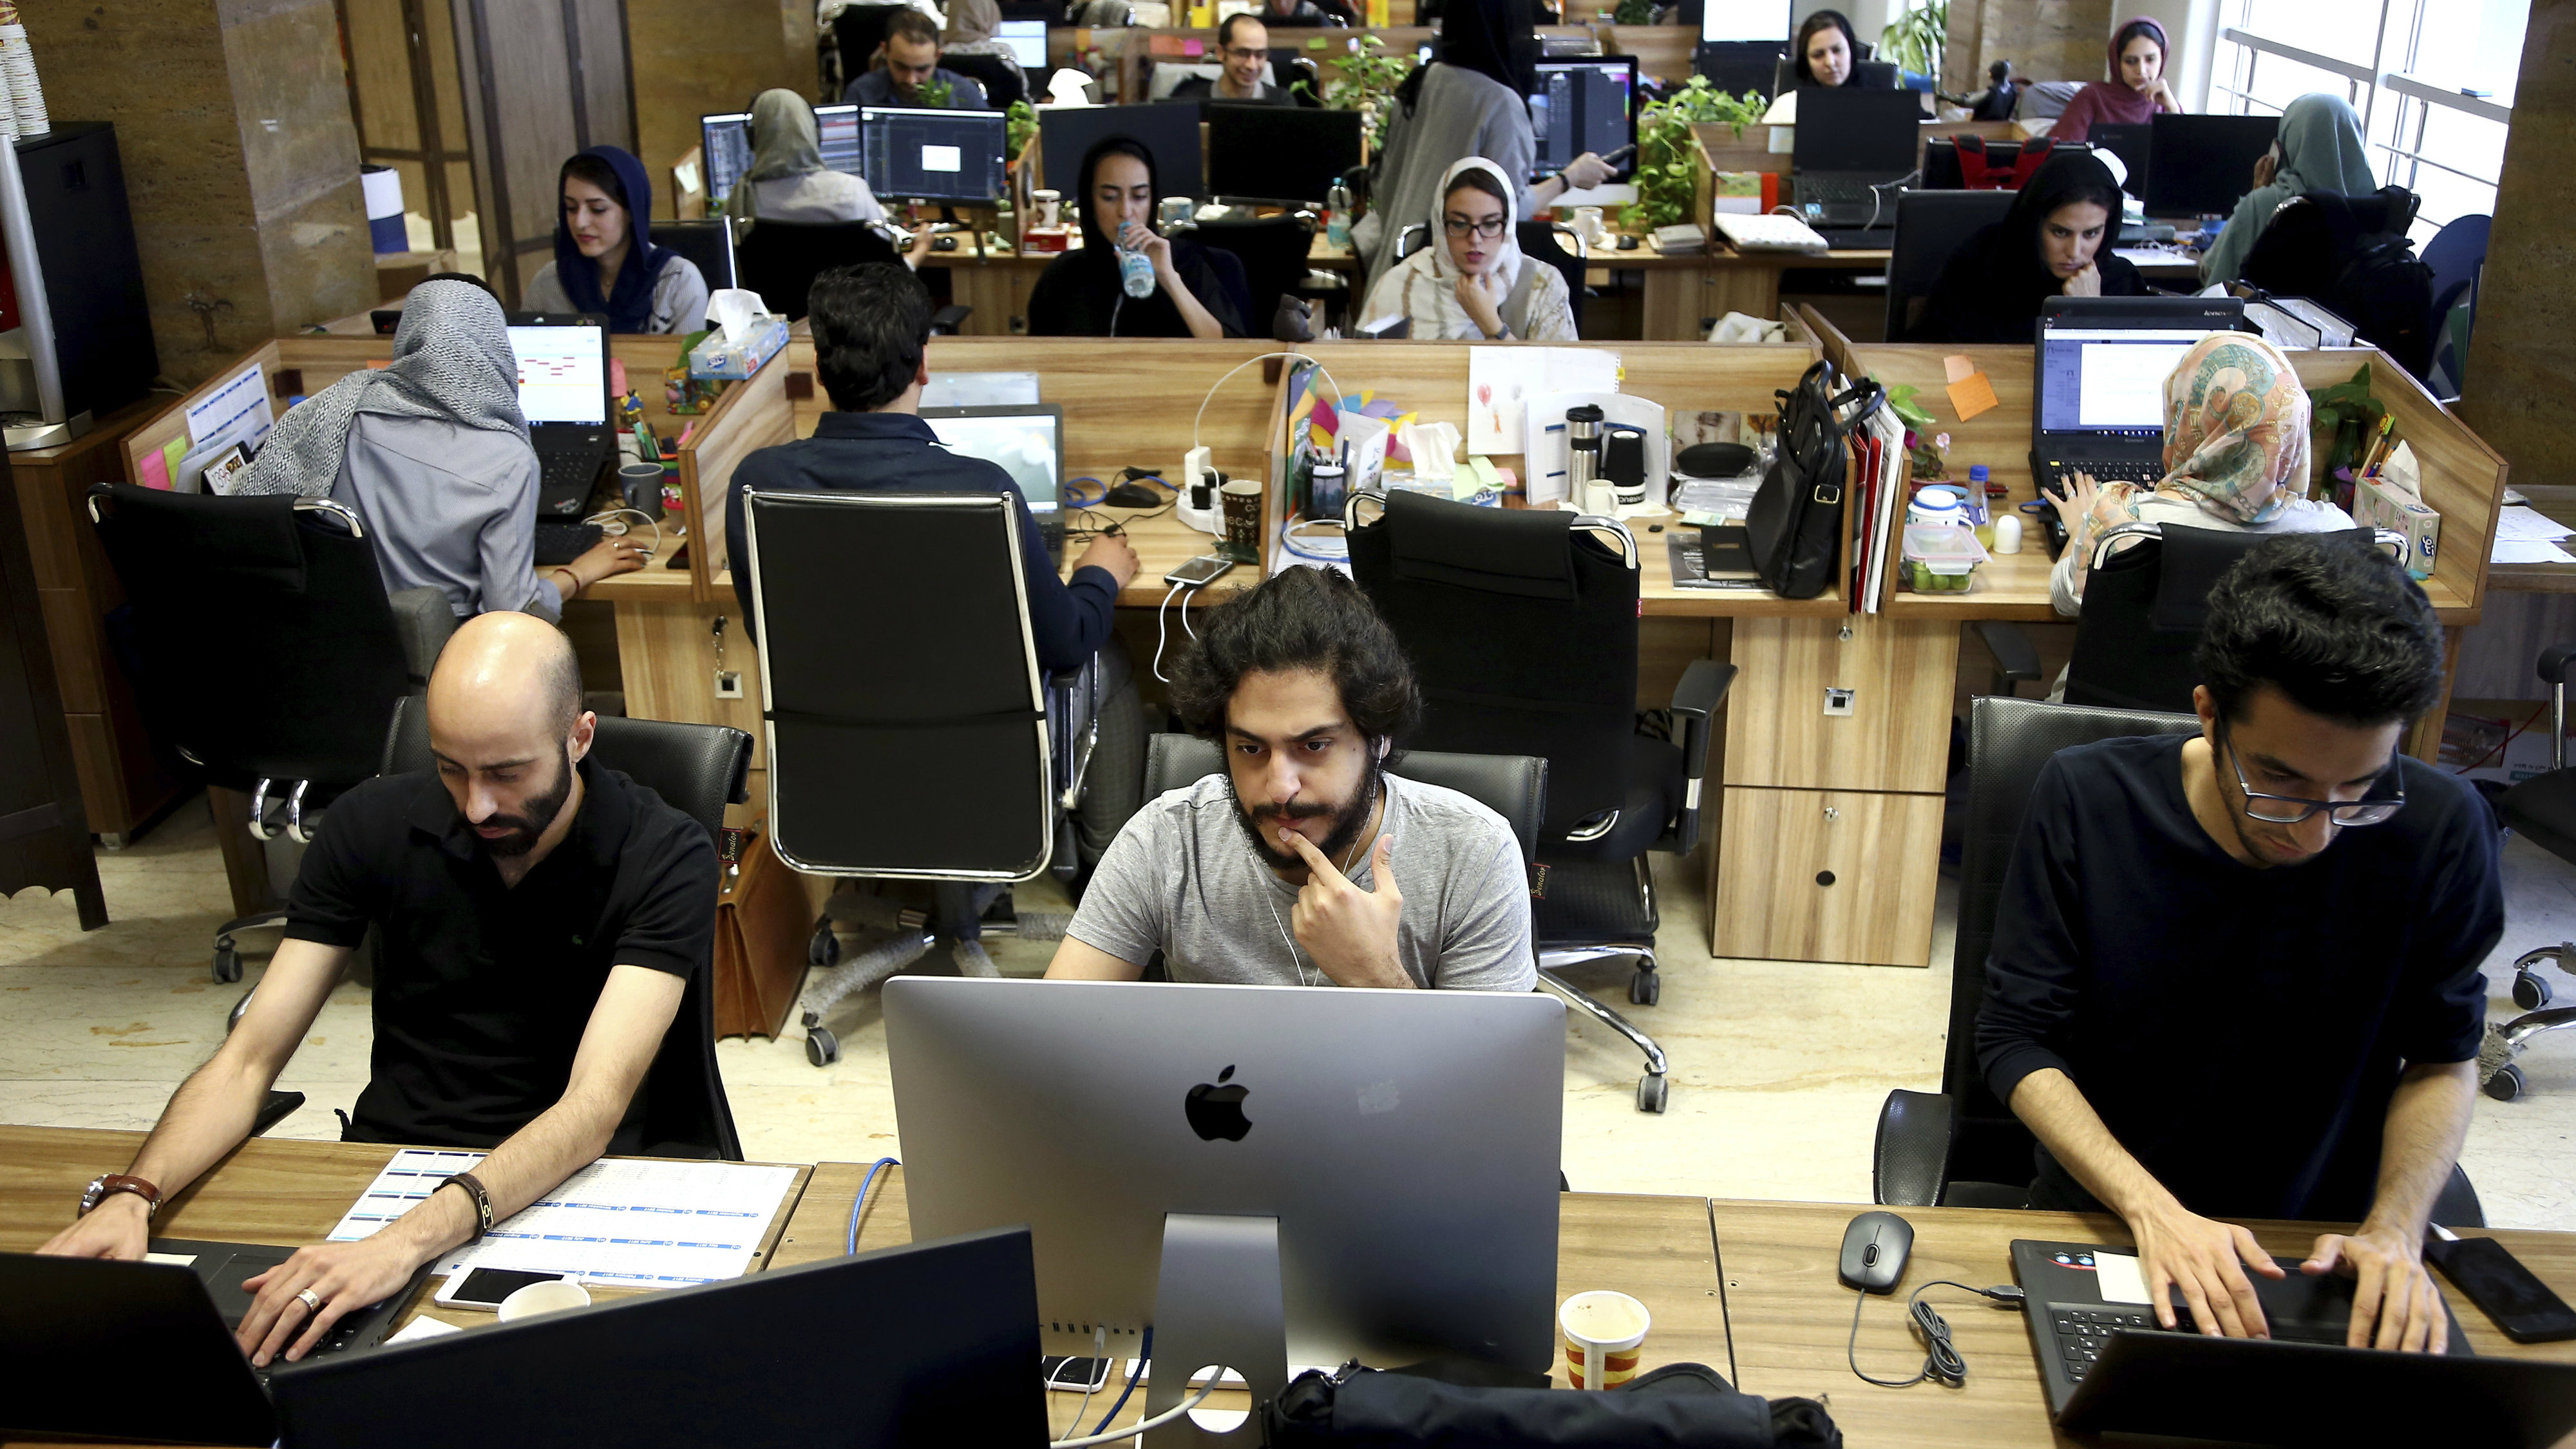 In this Monday, May 23, 2017, photo, staffers of the Snapp online taxi company work at their office in Tehran, Iran. Iran remains in many ways cut off economically from the rest of the world, fueling a surprisingly active local tech startup scene. It's driven by a growing number of Iranian millennials who see their country as a market ripe with opportunity.